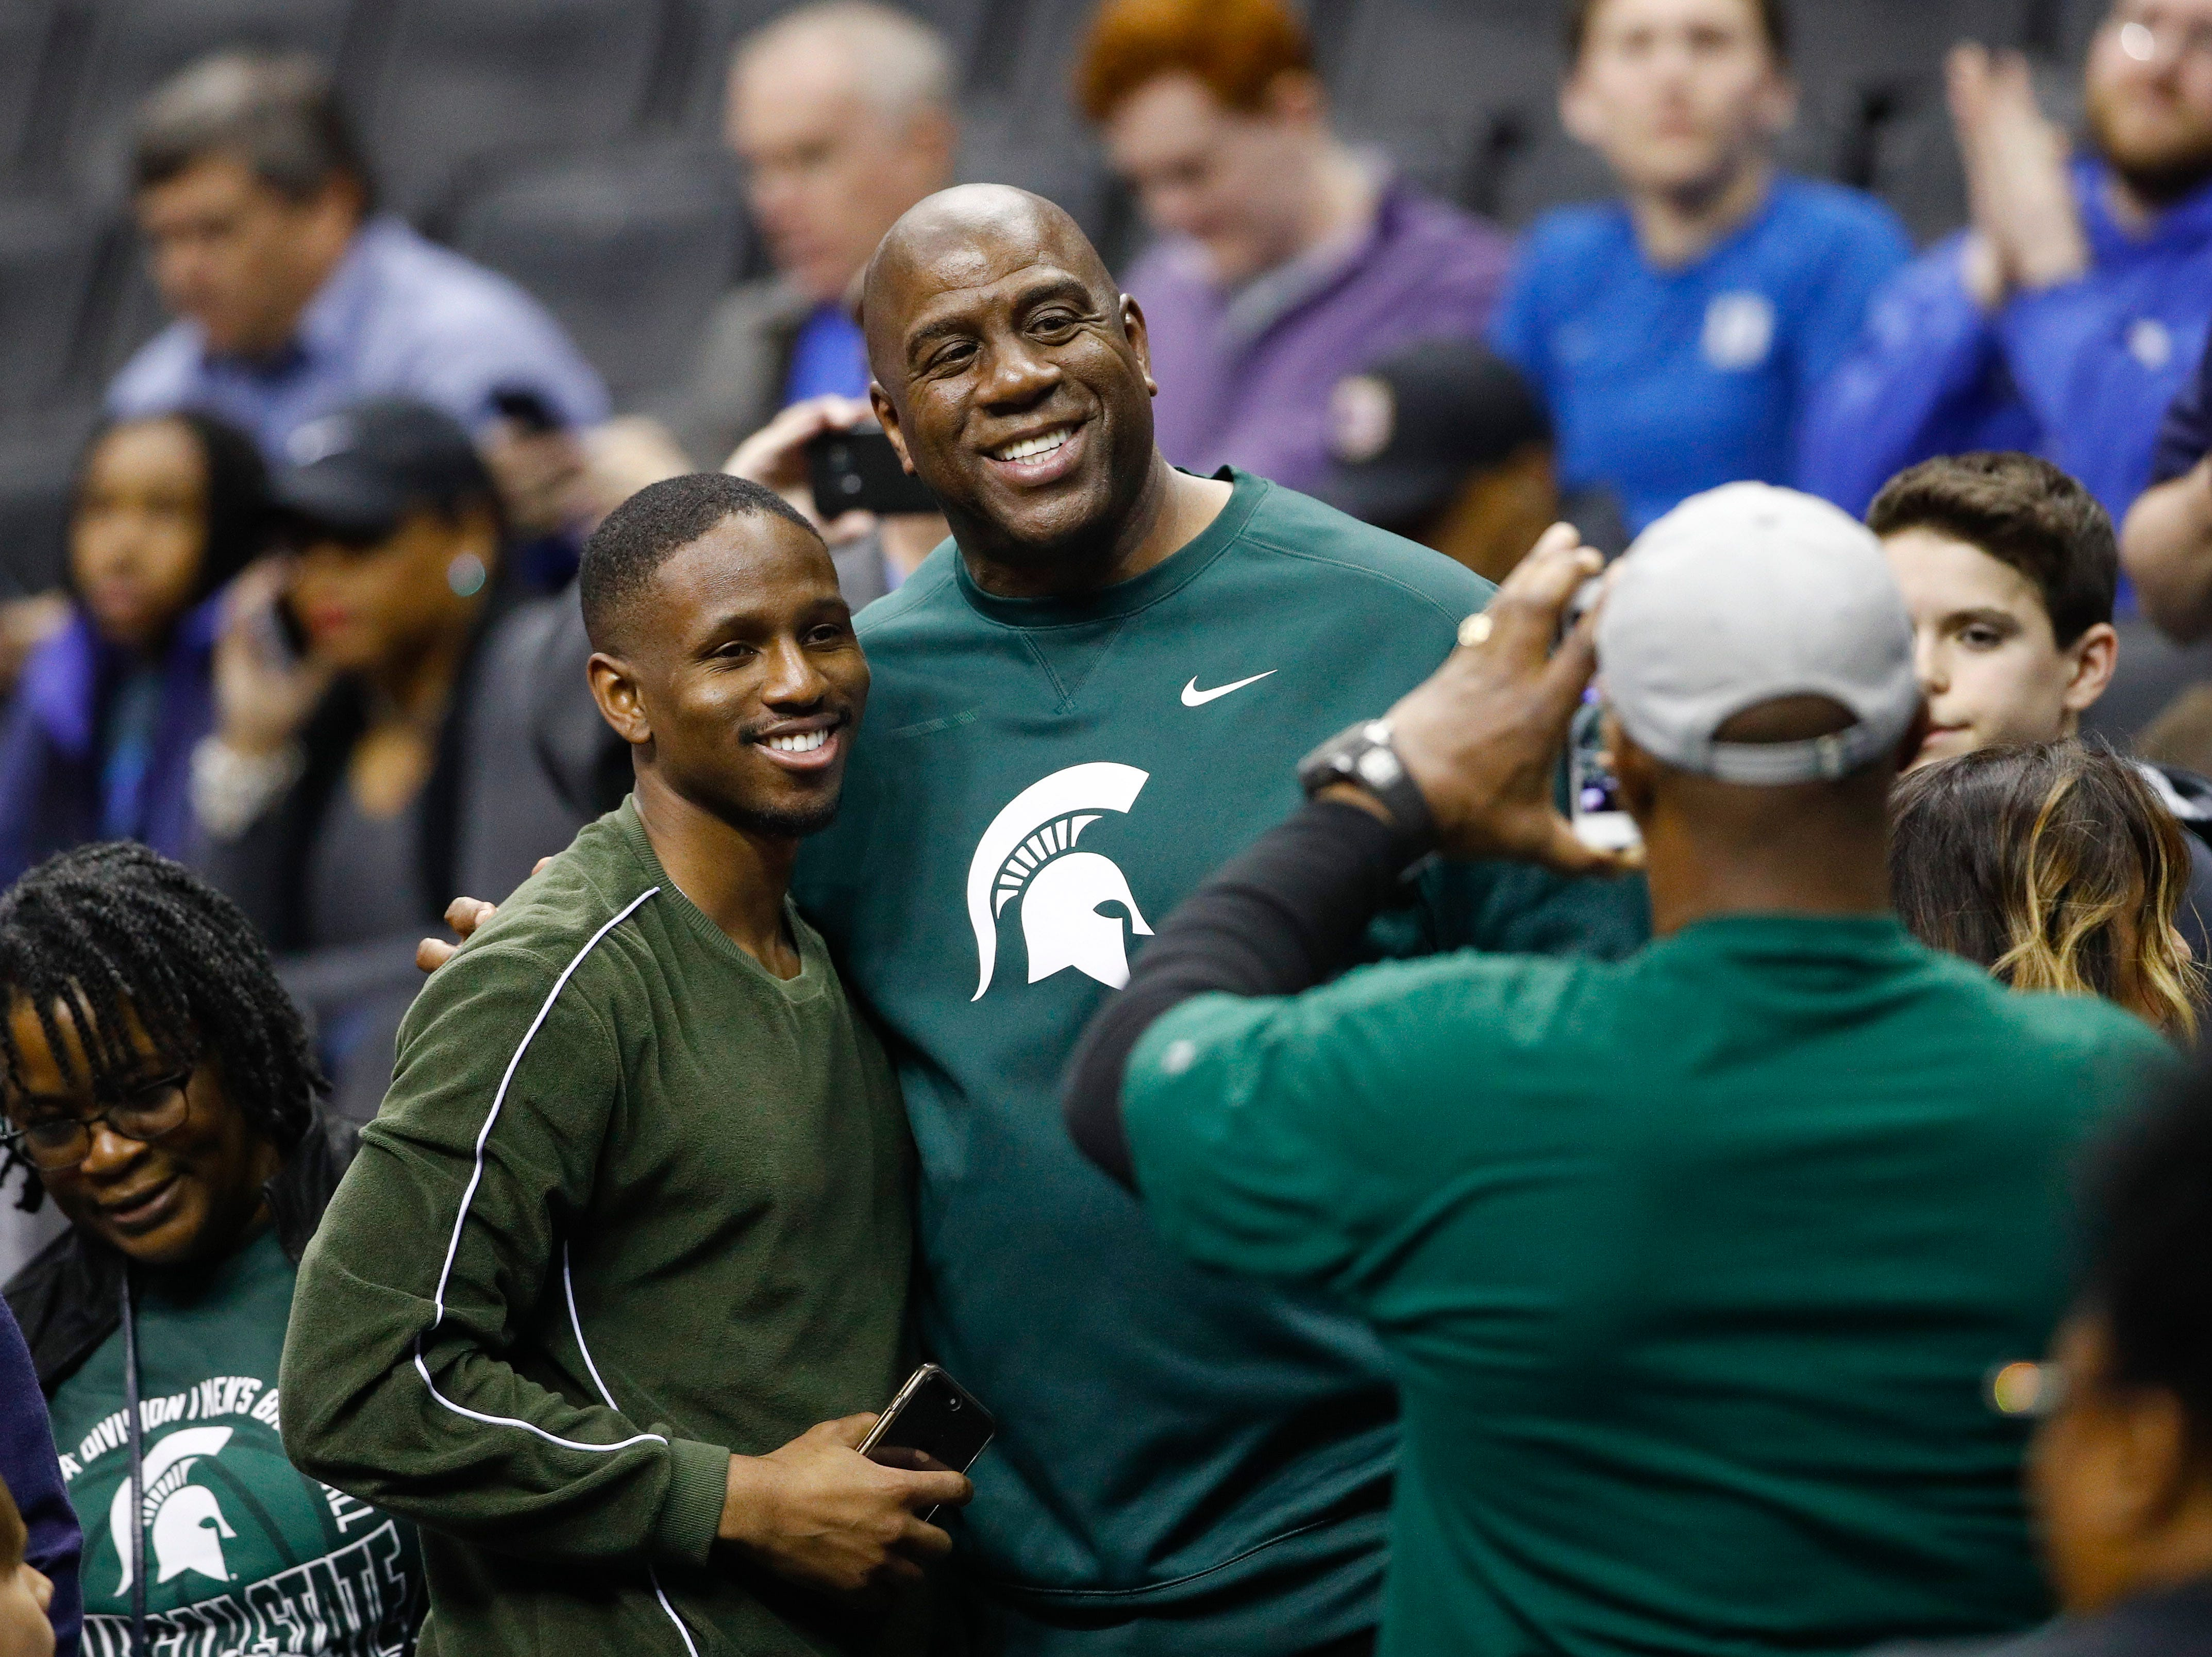 Los Angeles Lakers president and Michigan State alumni Magic Johnson, center, poses for photos before the start of a NCAA men's East Regional final college basketball game between Michigan State and Duke in Washington, Sunday, March 31, 2019.